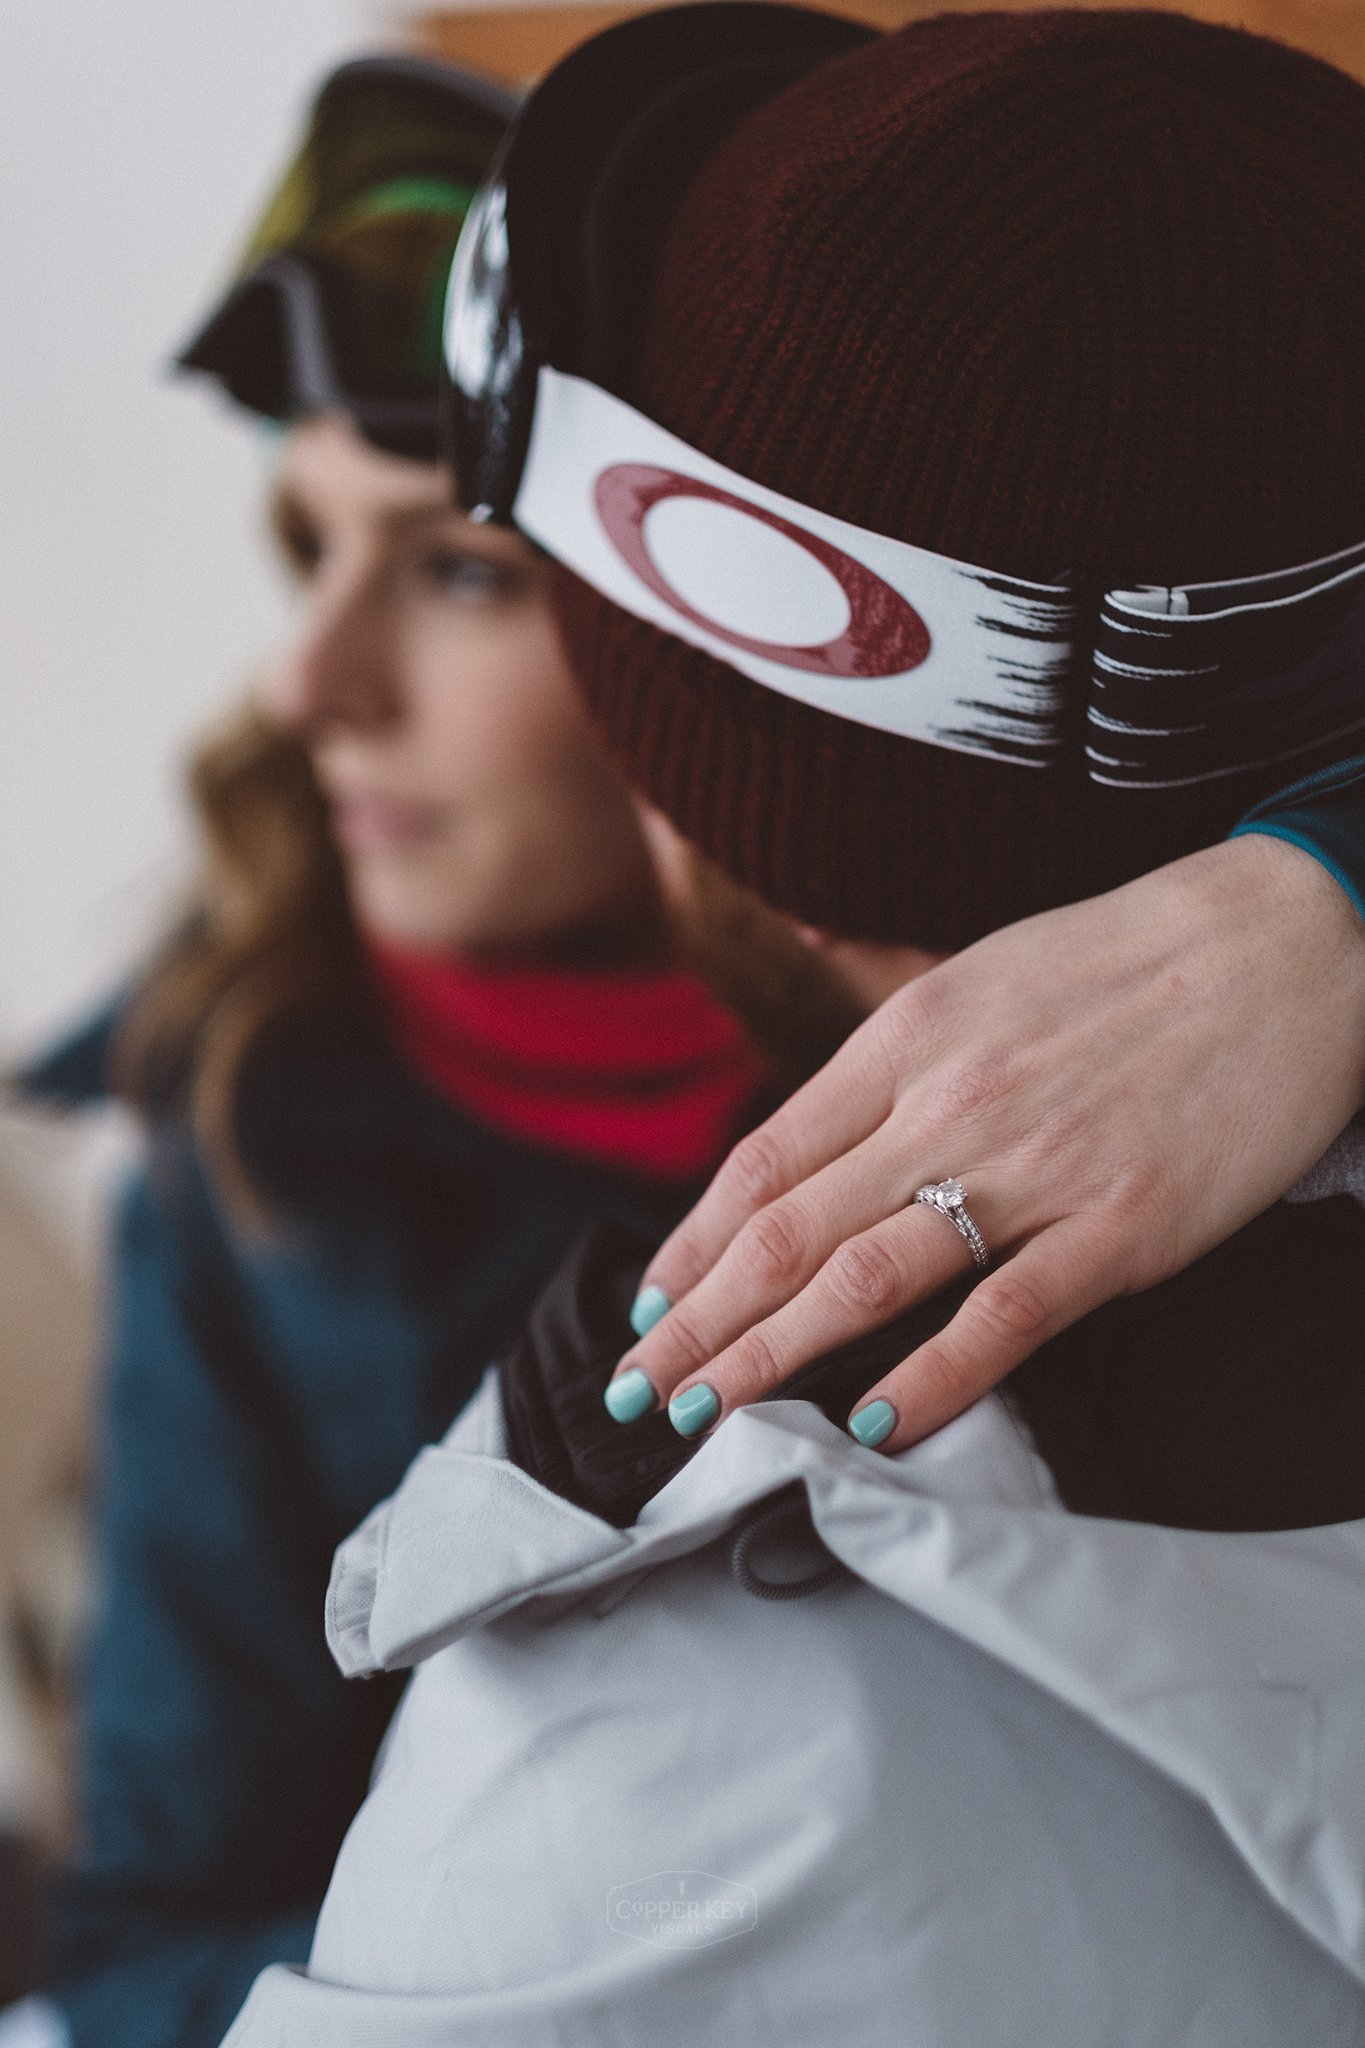 Copper Key Visuals Tyrol Basin Engagement Session-15.jpg